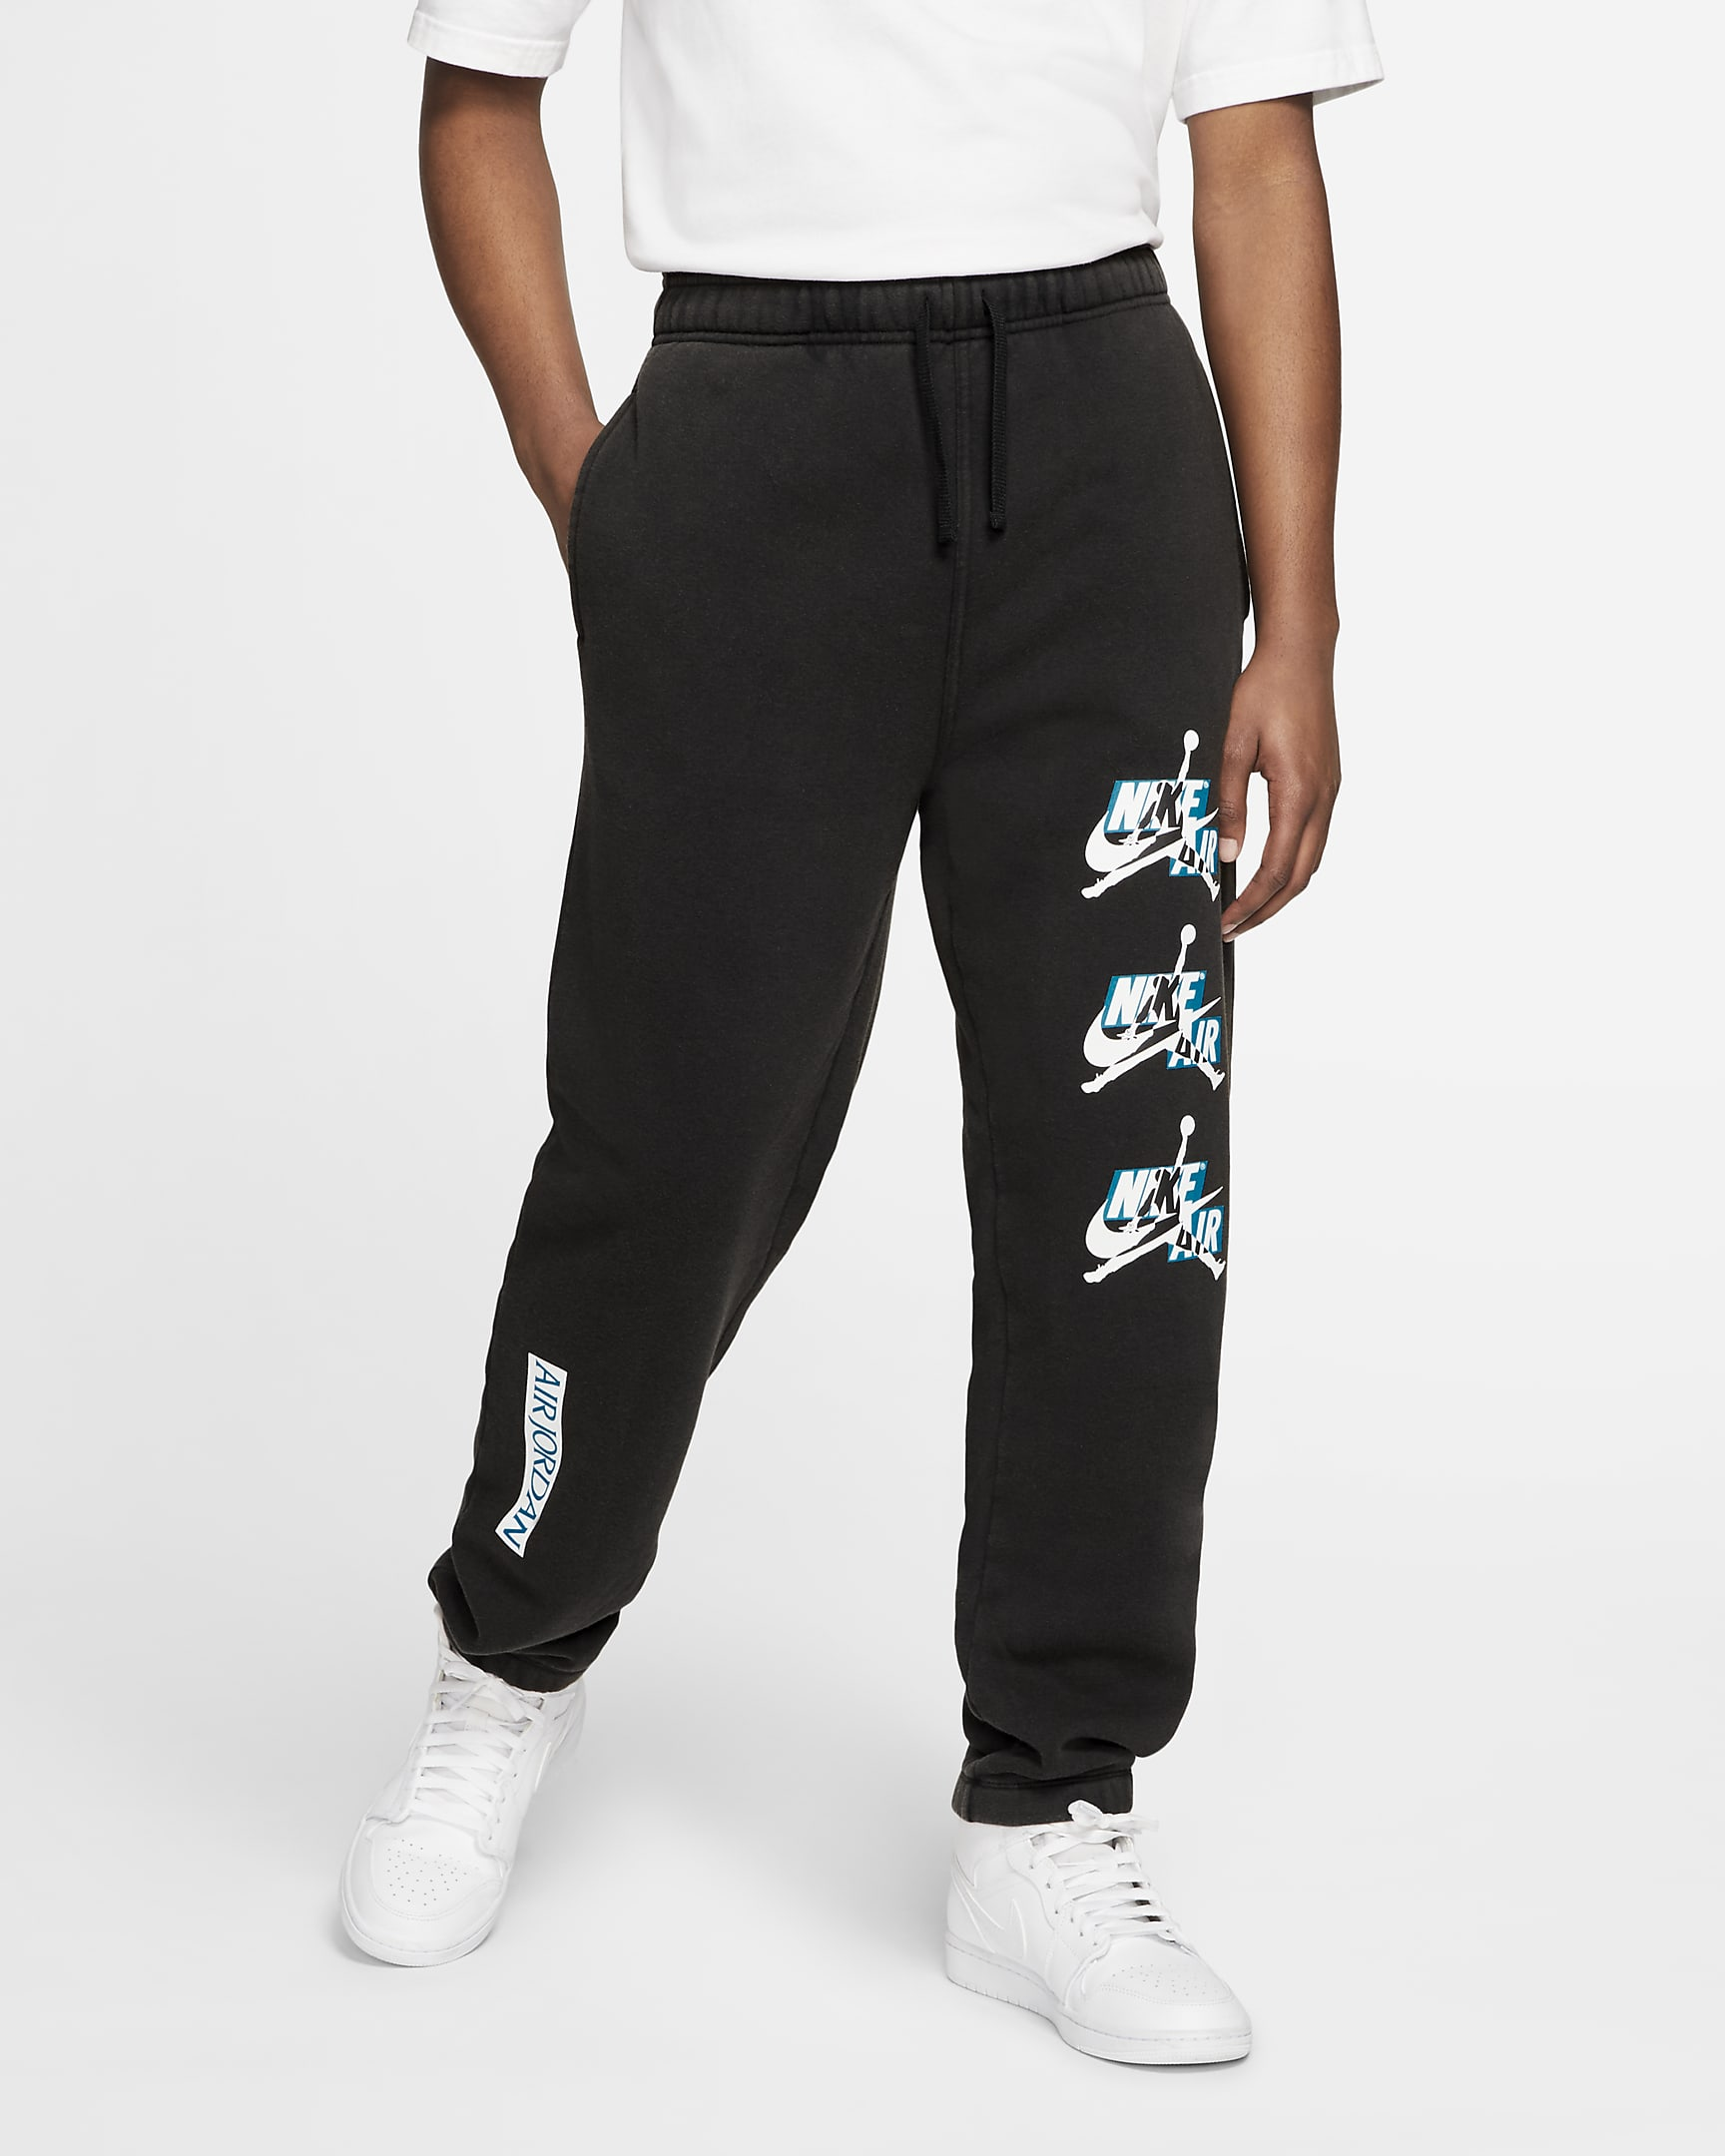 jordan-jumpman-mens-washed-fleece-pants-RZ6s4C